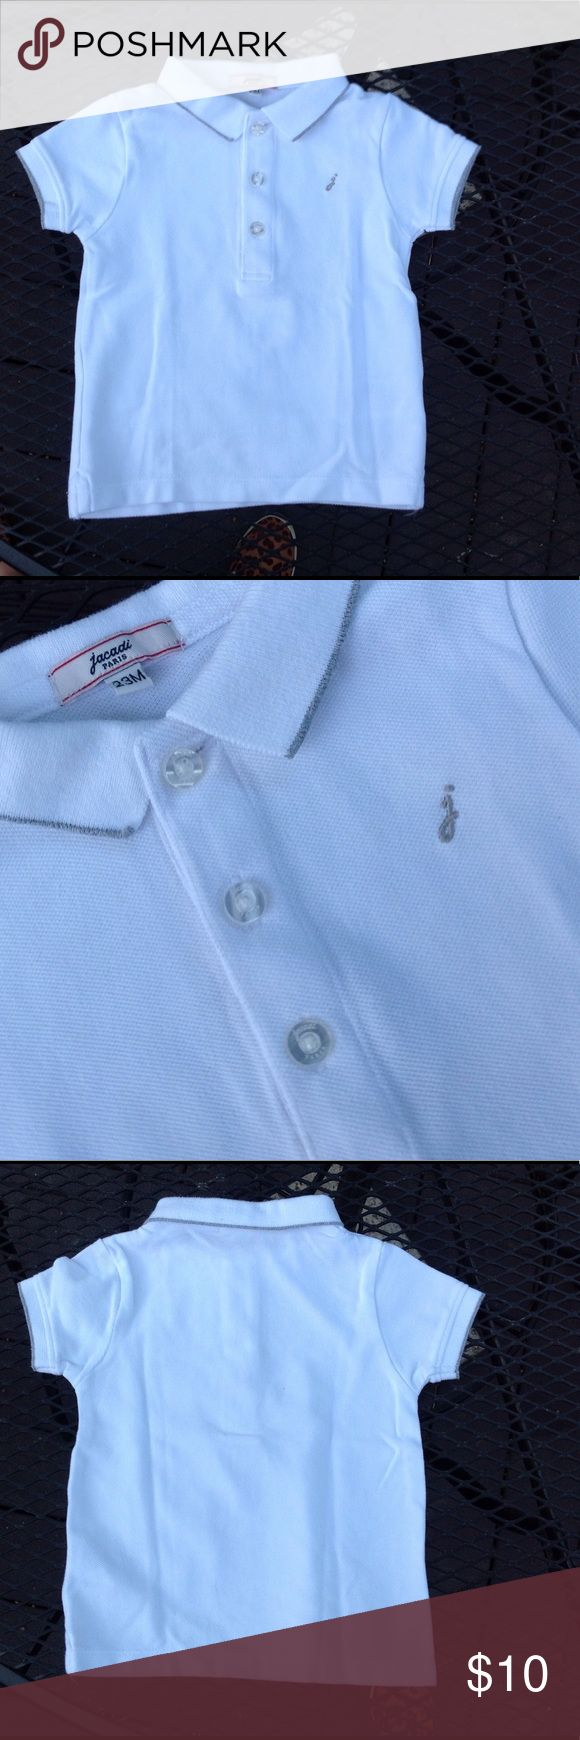 Jacadi Cotton Pique Polo Shirt Boys Size 2Y Excellent like new condition. Size 2Y(year). Jacadi Shirts & Tops Polos